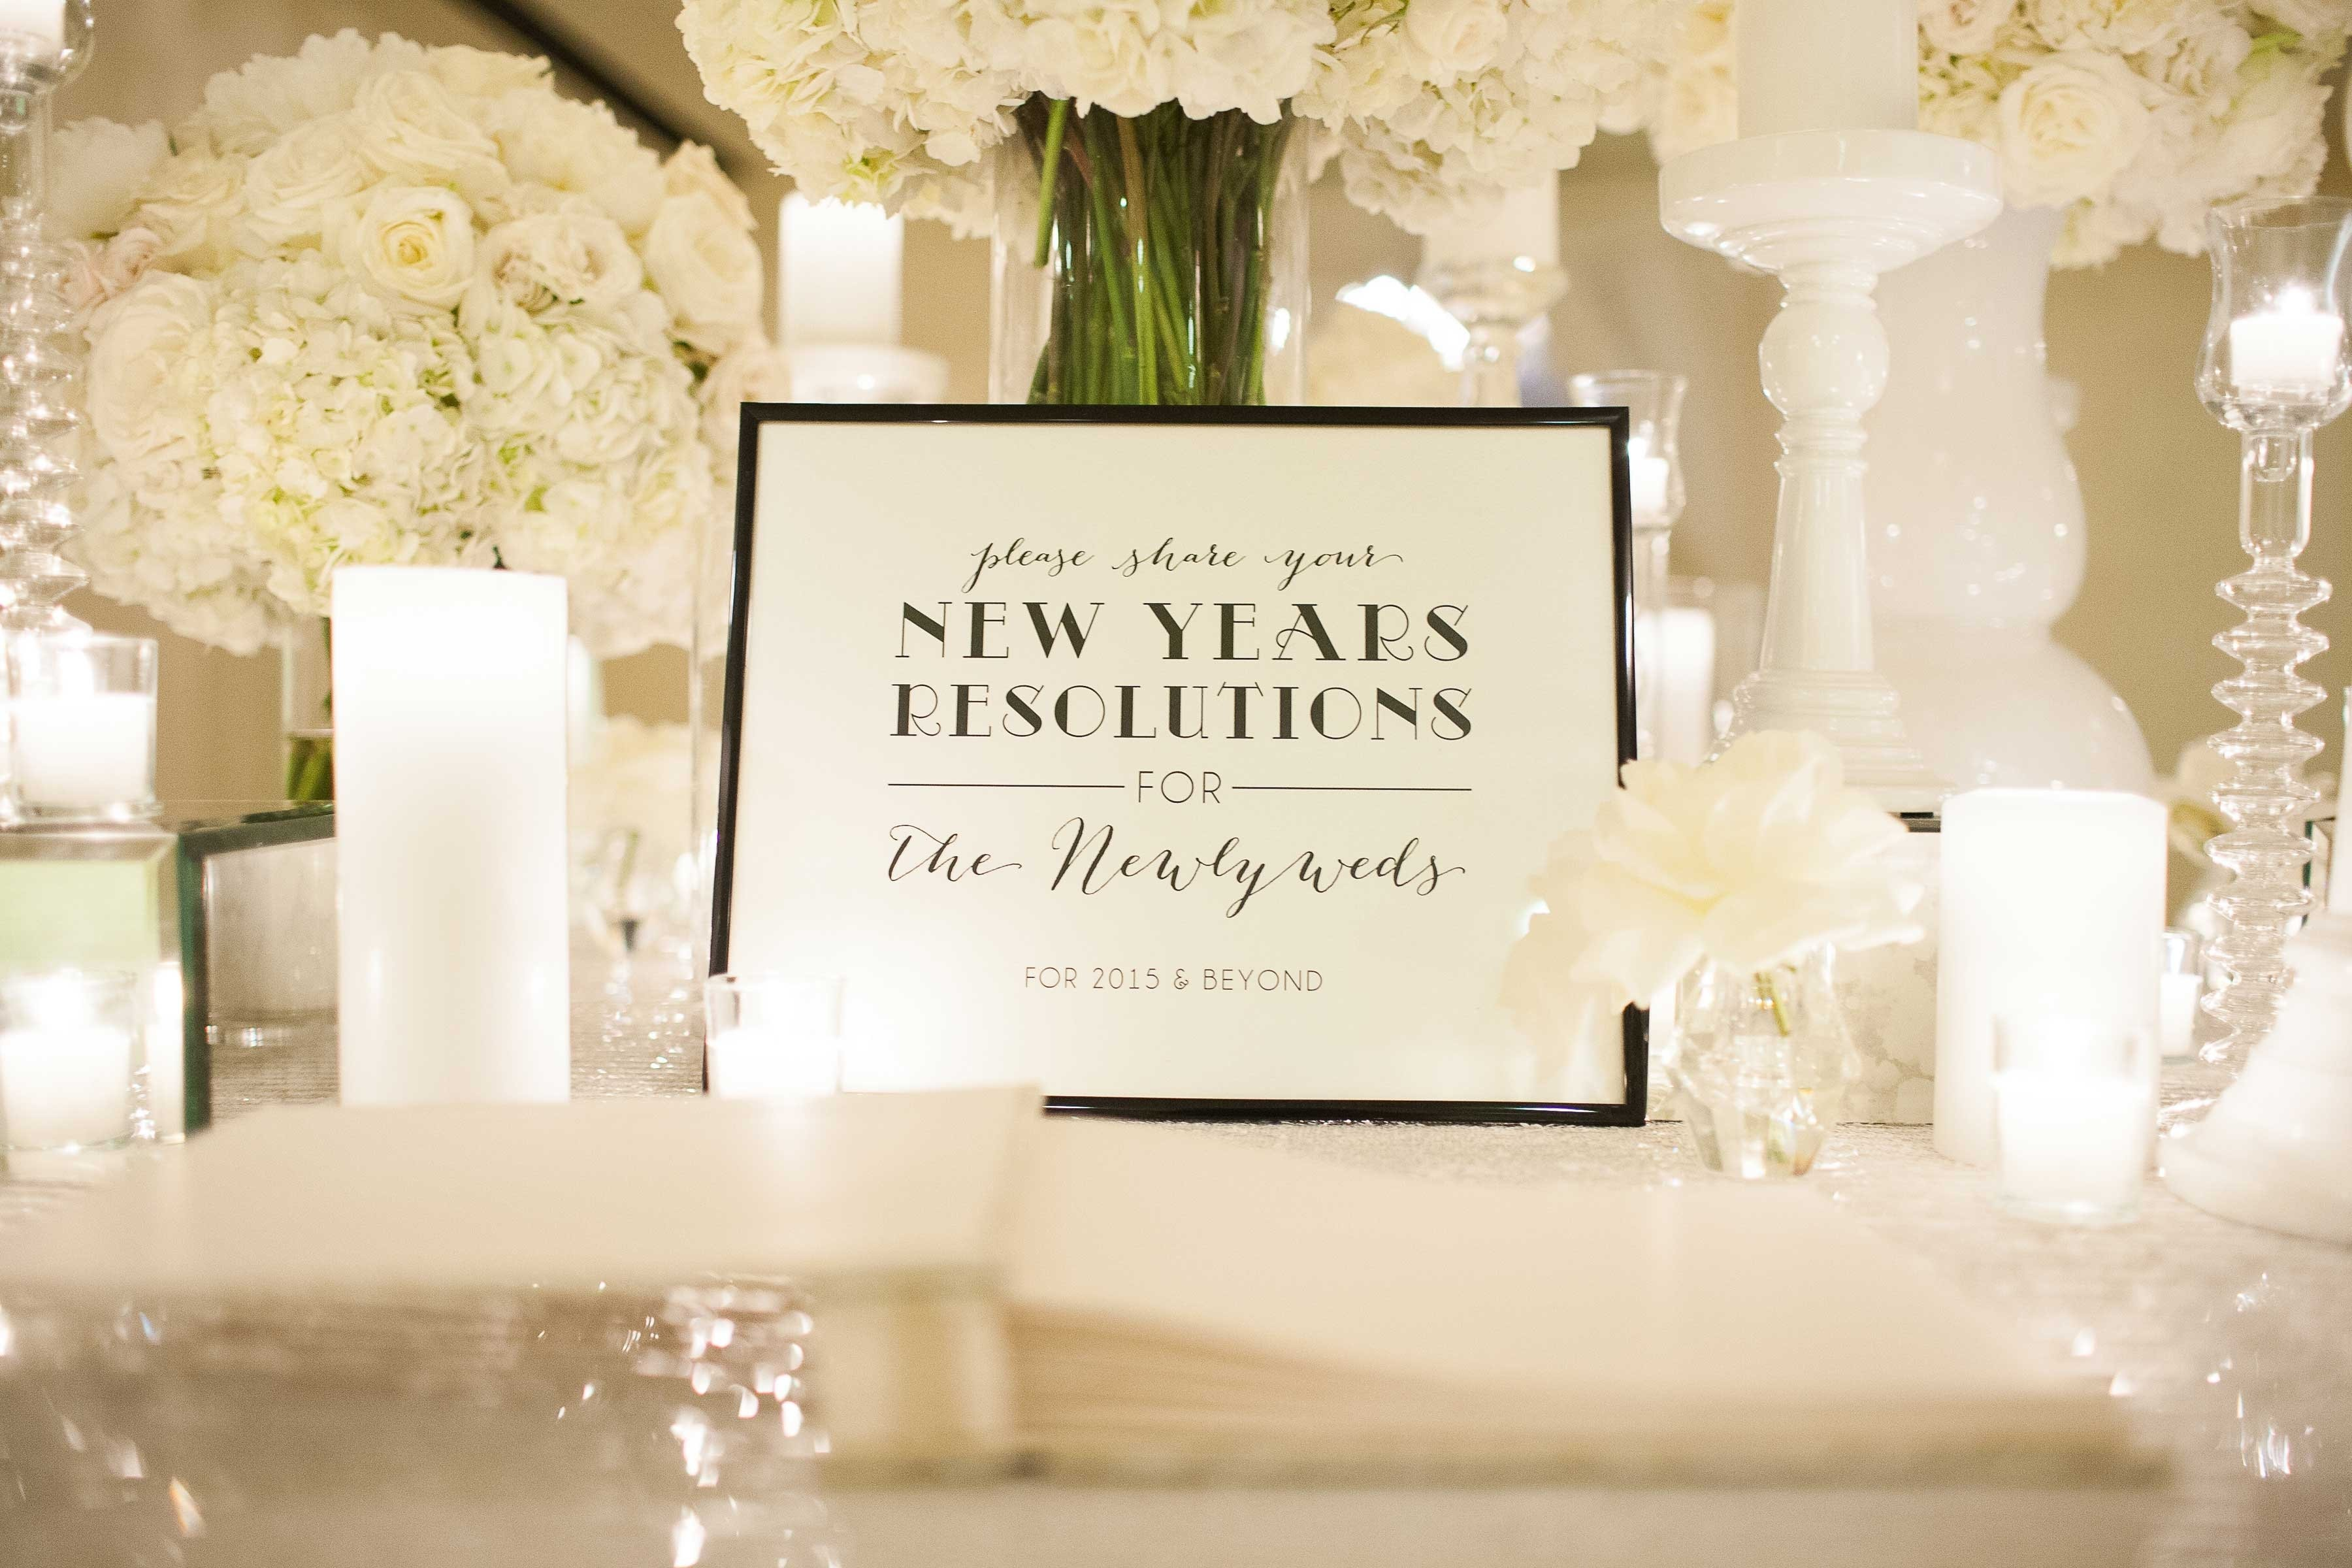 10 Attractive New Years Eve Wedding Ideas 15 new years eve wedding ideas from real weddings inside weddings 2020